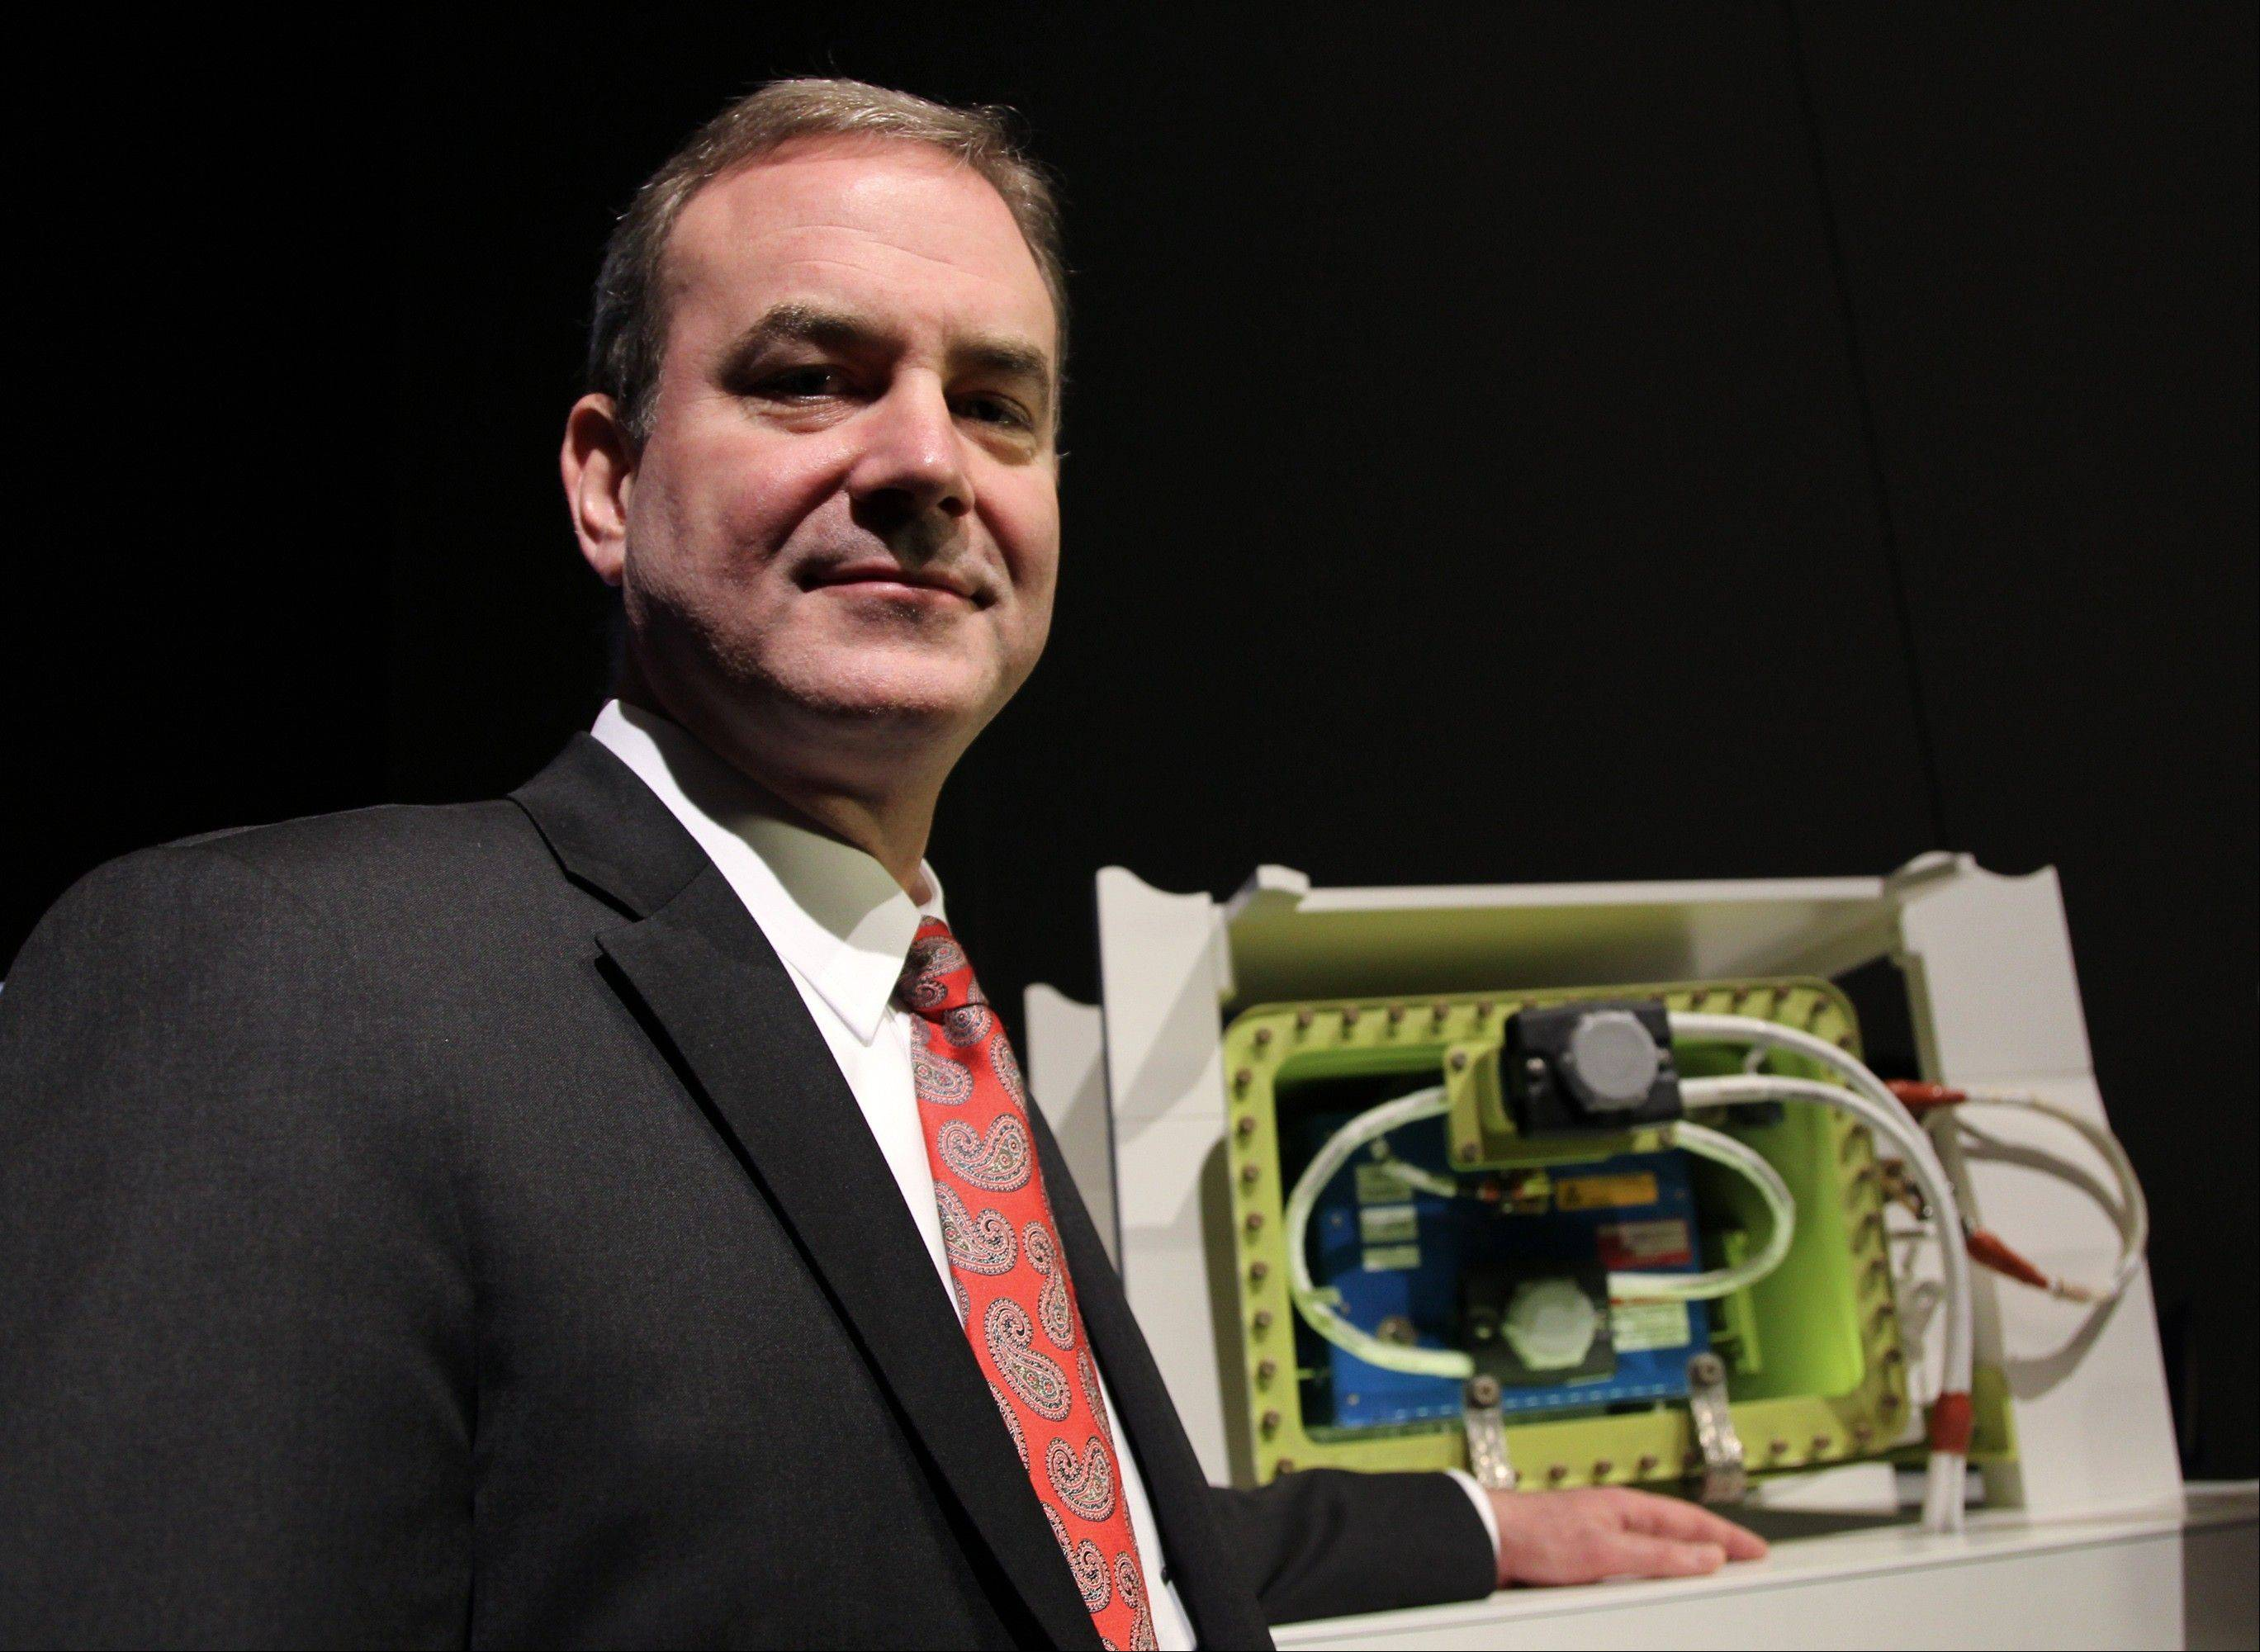 Associated Press Mike Sinnett, vice president at Boeing Commercial Airplanes and chief project engineer of the 787 program, with a model of the newly redesigned battery for Boeing Co.'s 787 Dreamliner during a news conference in Tokyo, Japan.